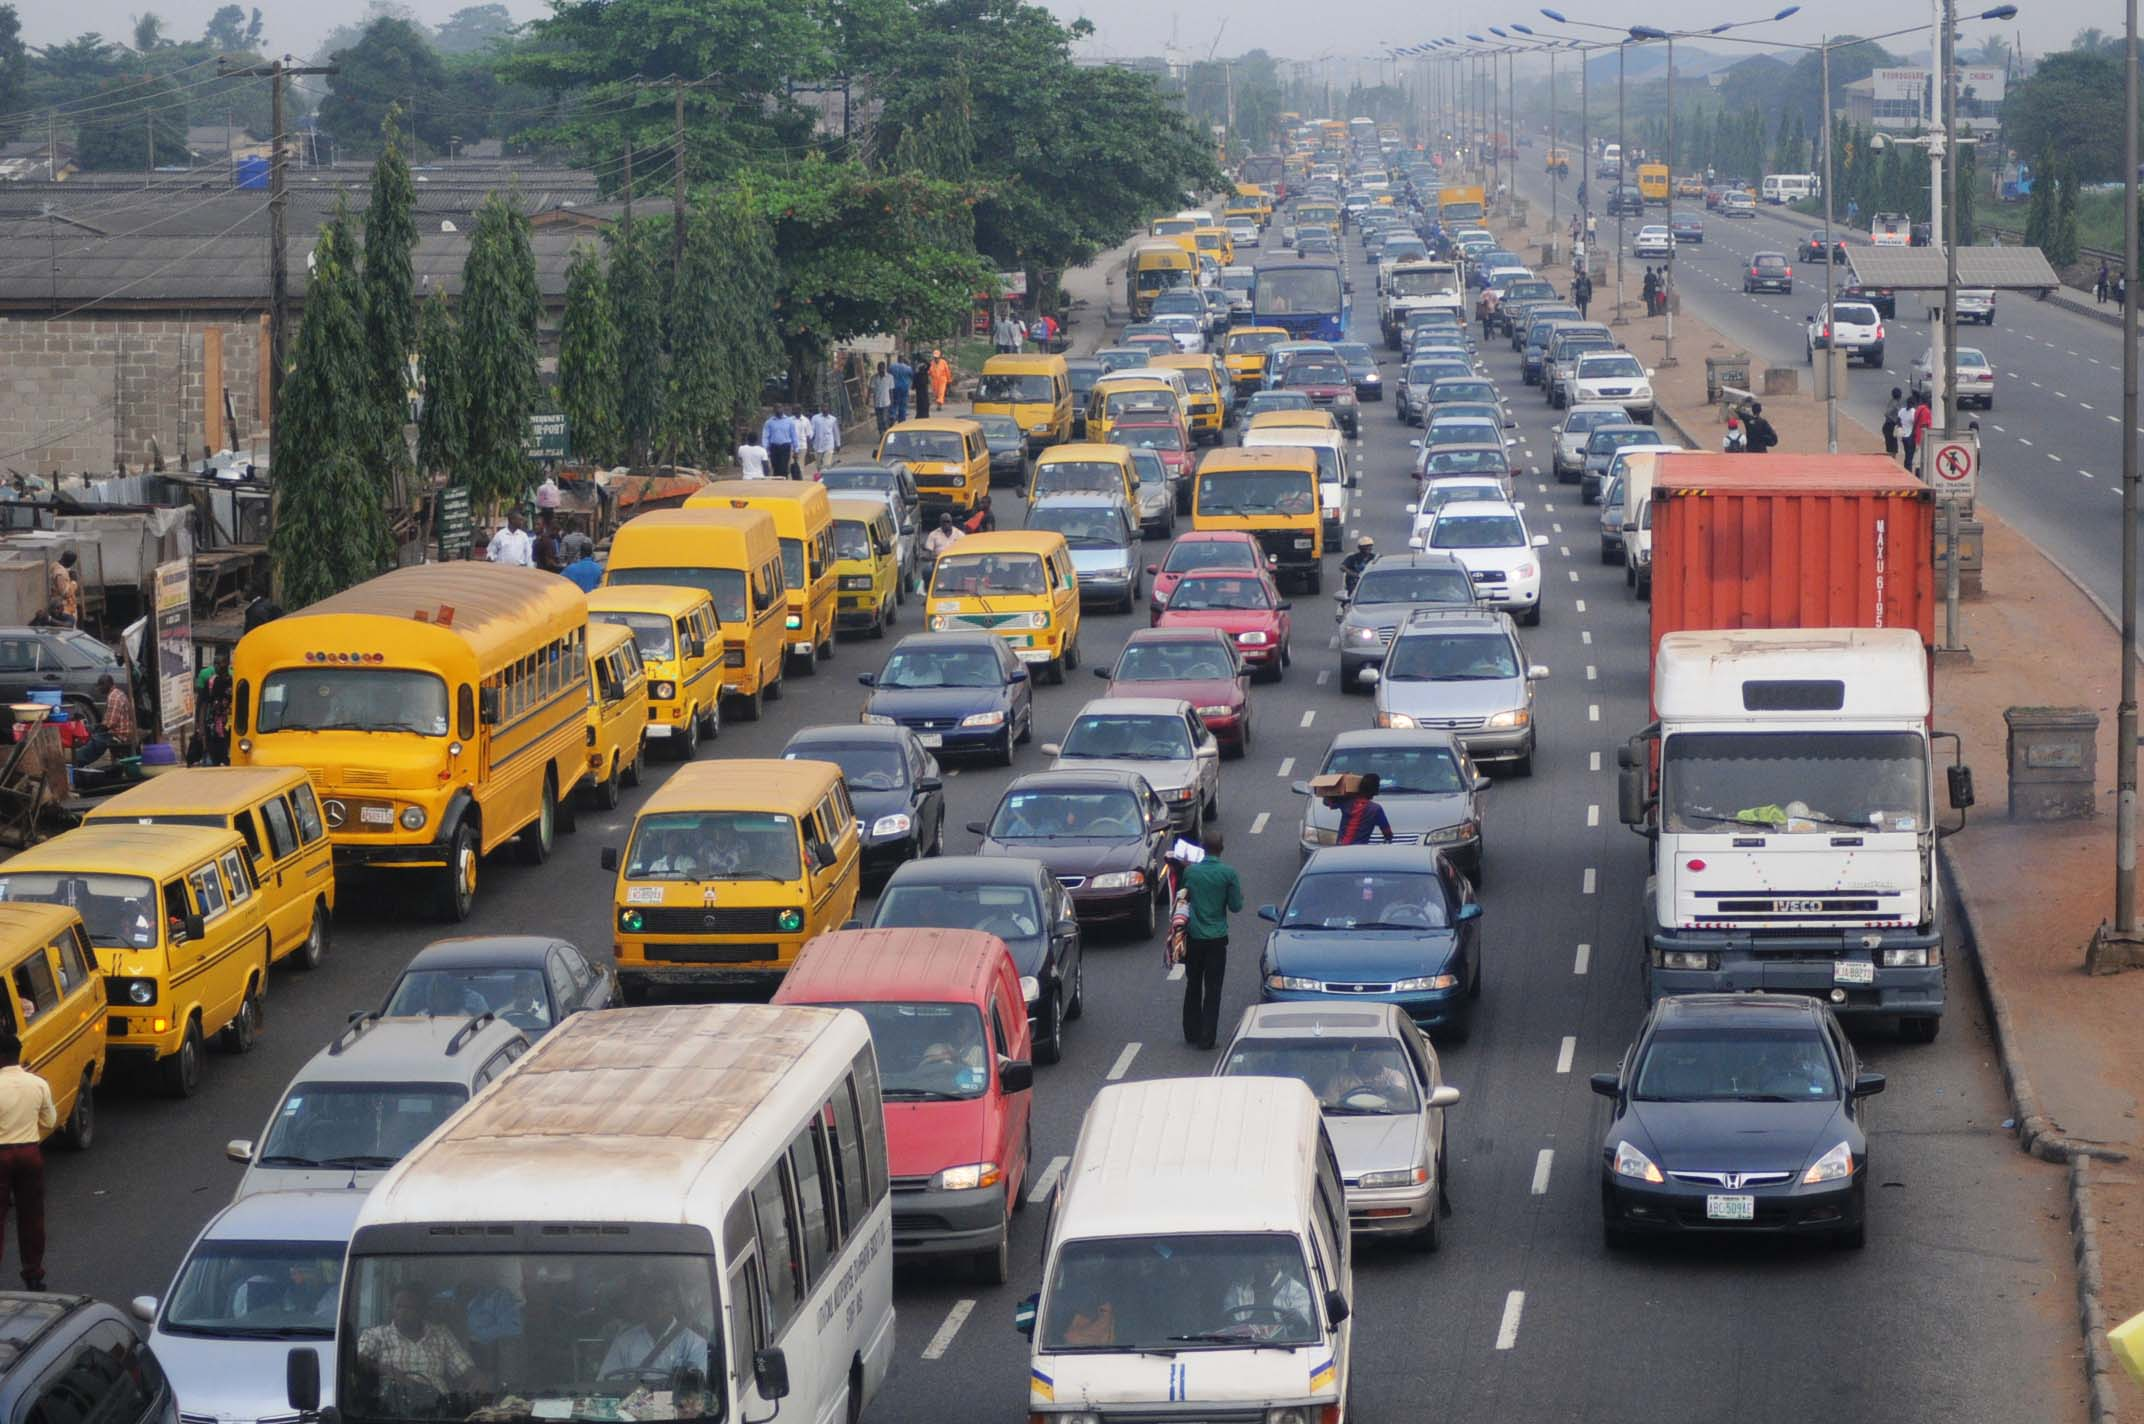 Drivers in Lagos spend 1516 hours in traffic, Los Angeles 128 hours - Report